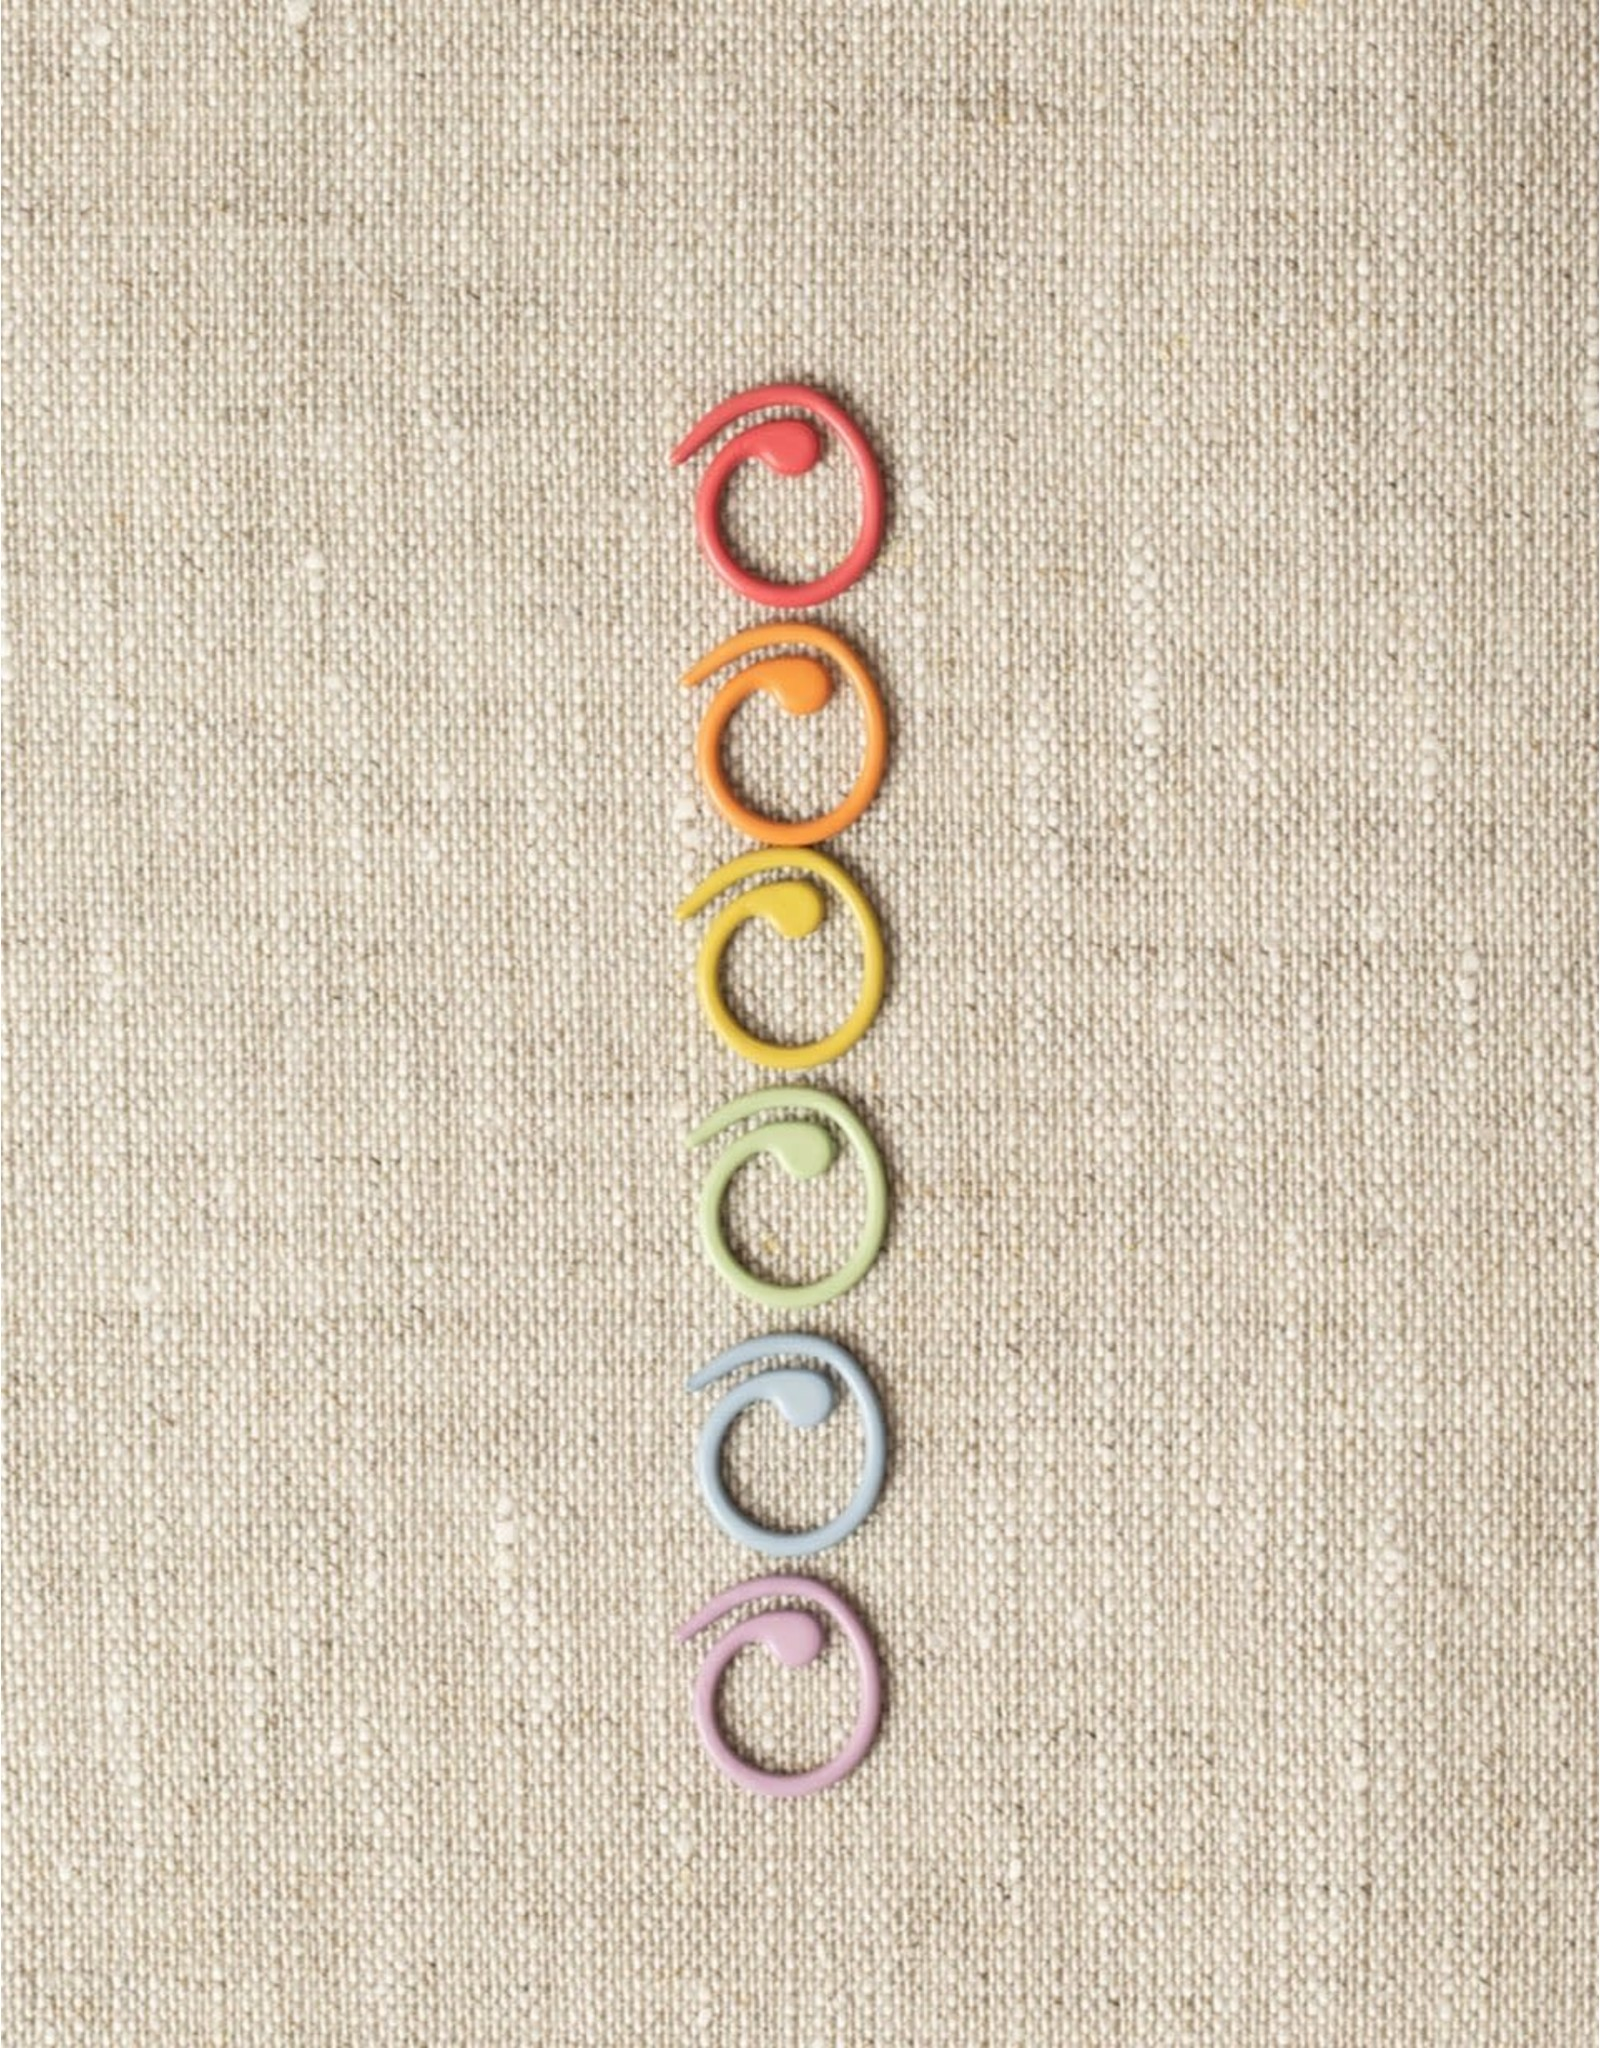 Split Ring Markers by Cocoknits